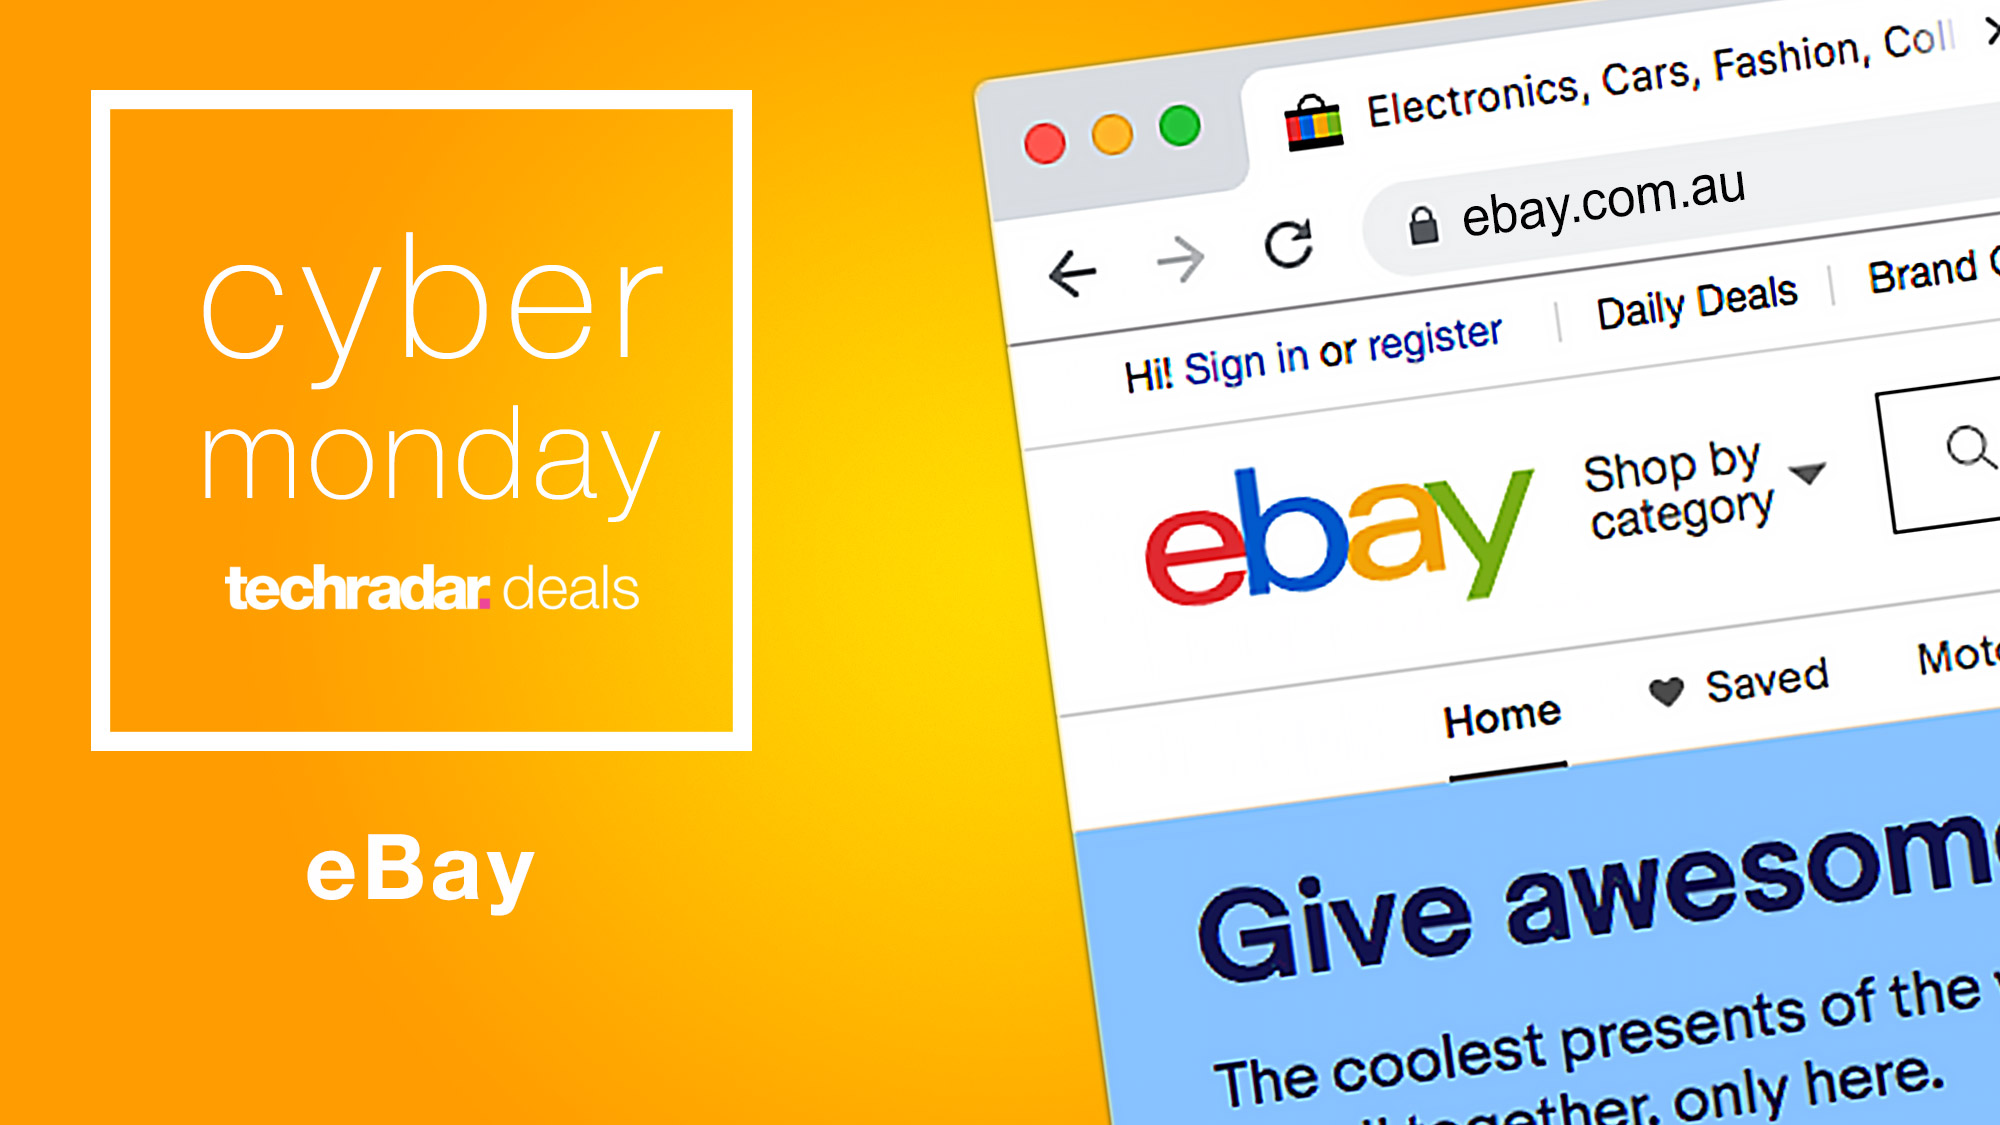 Ebay Cyber Monday 2020 Deals In Australia What To Expect On November 30 Techradar